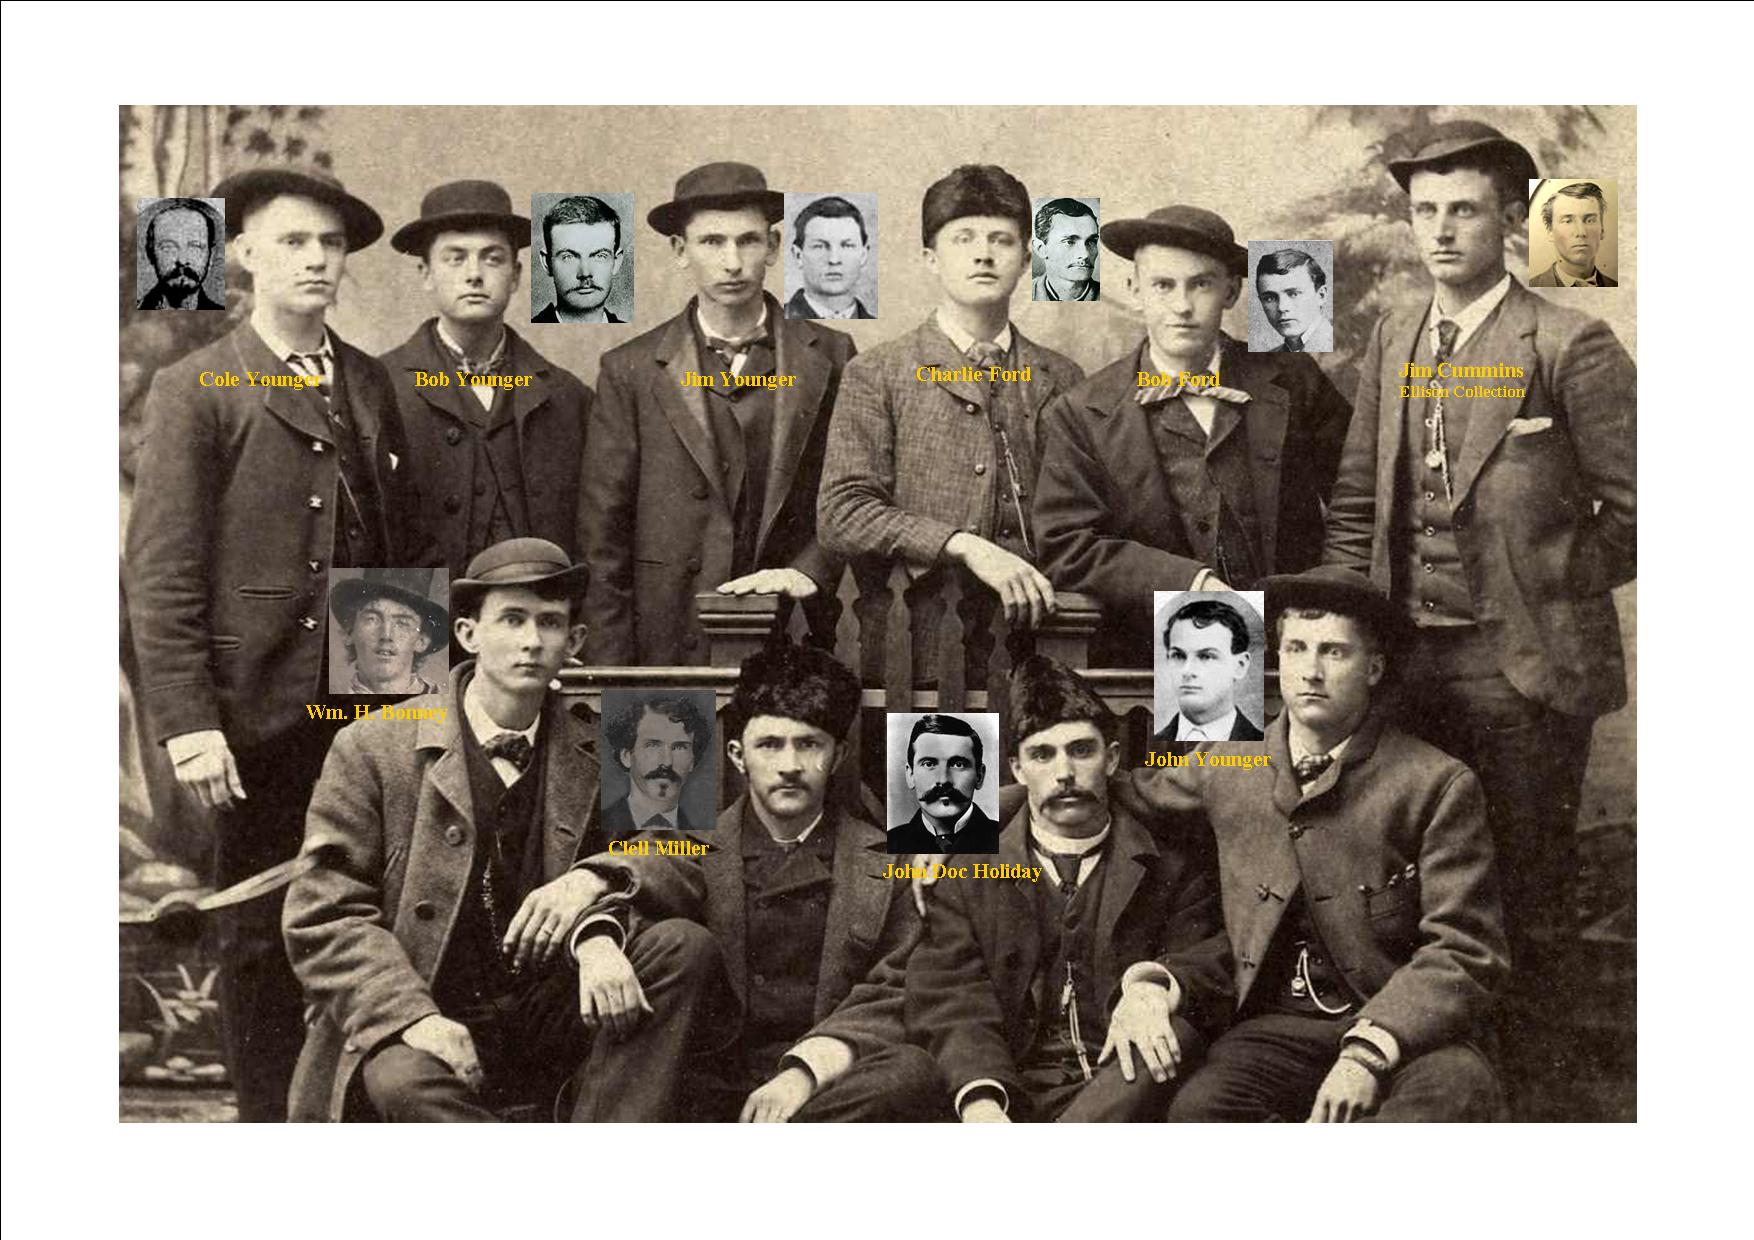 Billy the kid doc holiday younger brothers and more jesse james photo album - Gang gang ...